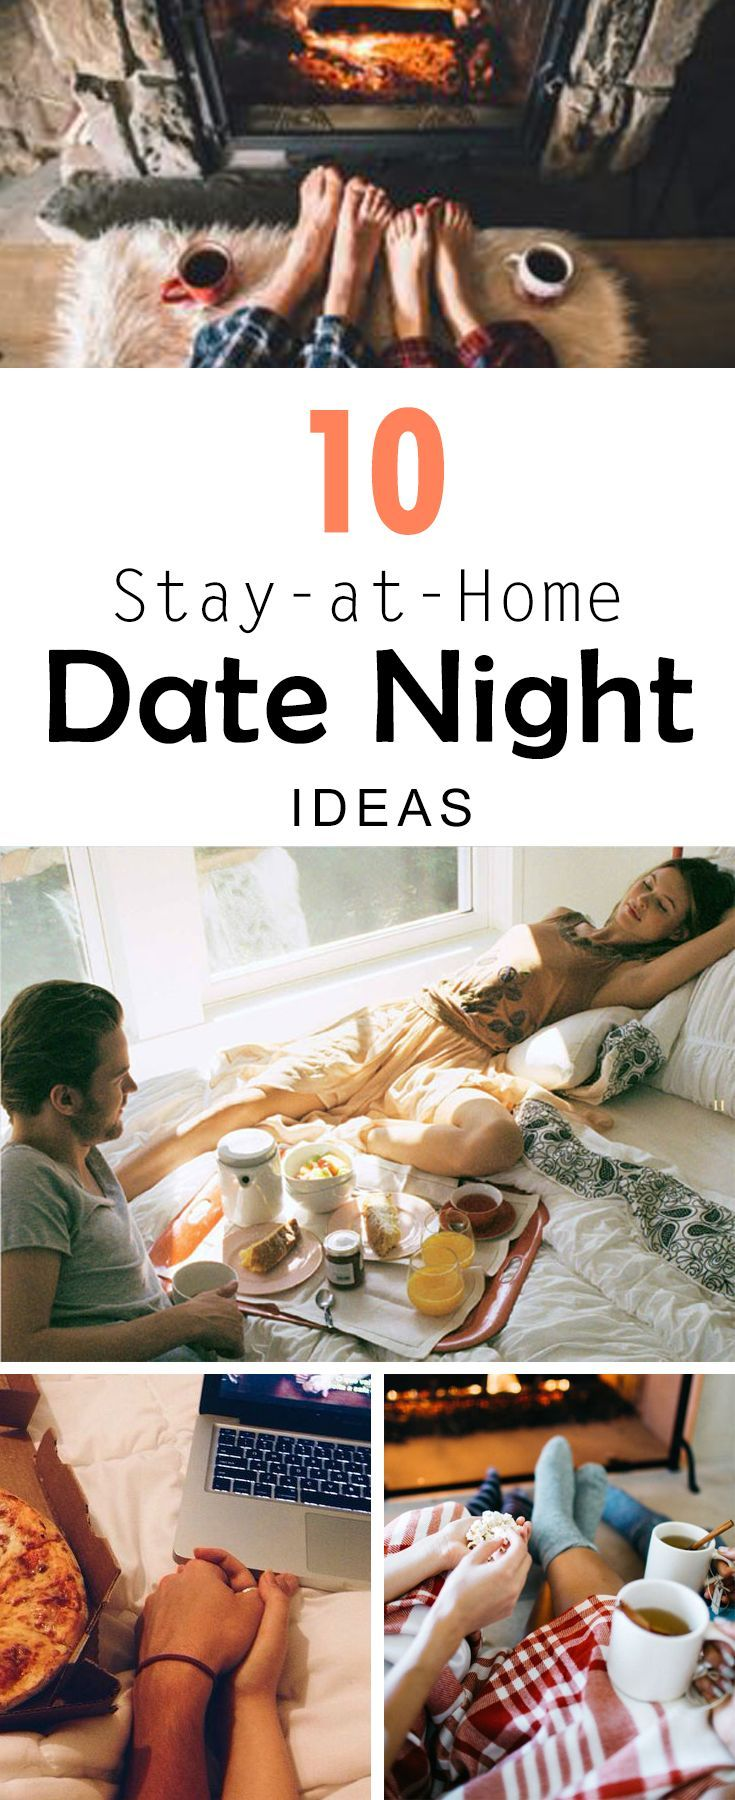 10 Stay-At-Home Date Night Ideas